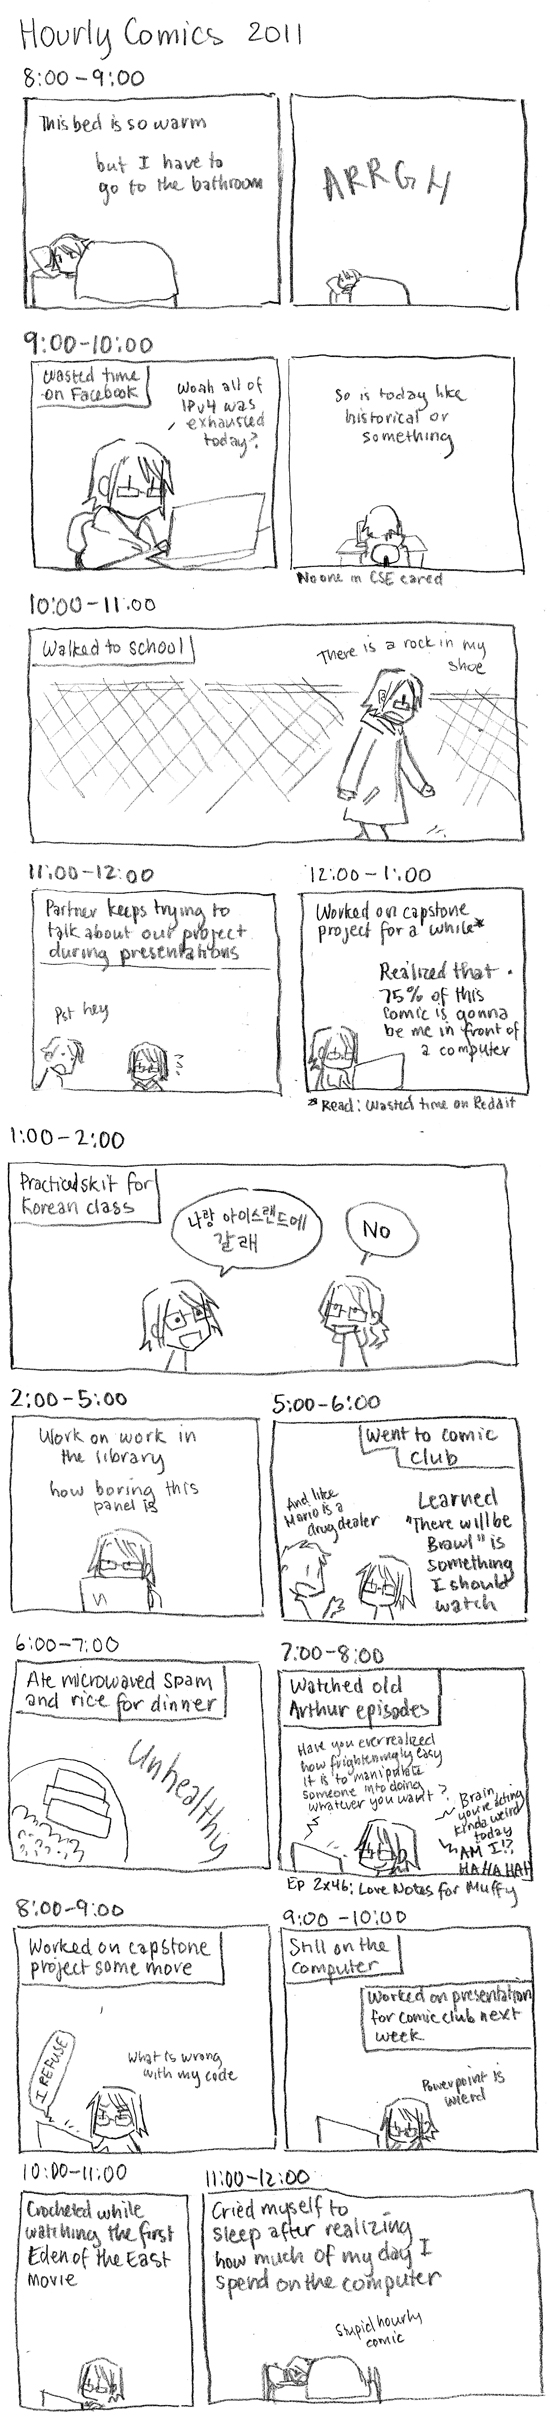 Hourly Comics Day 2011